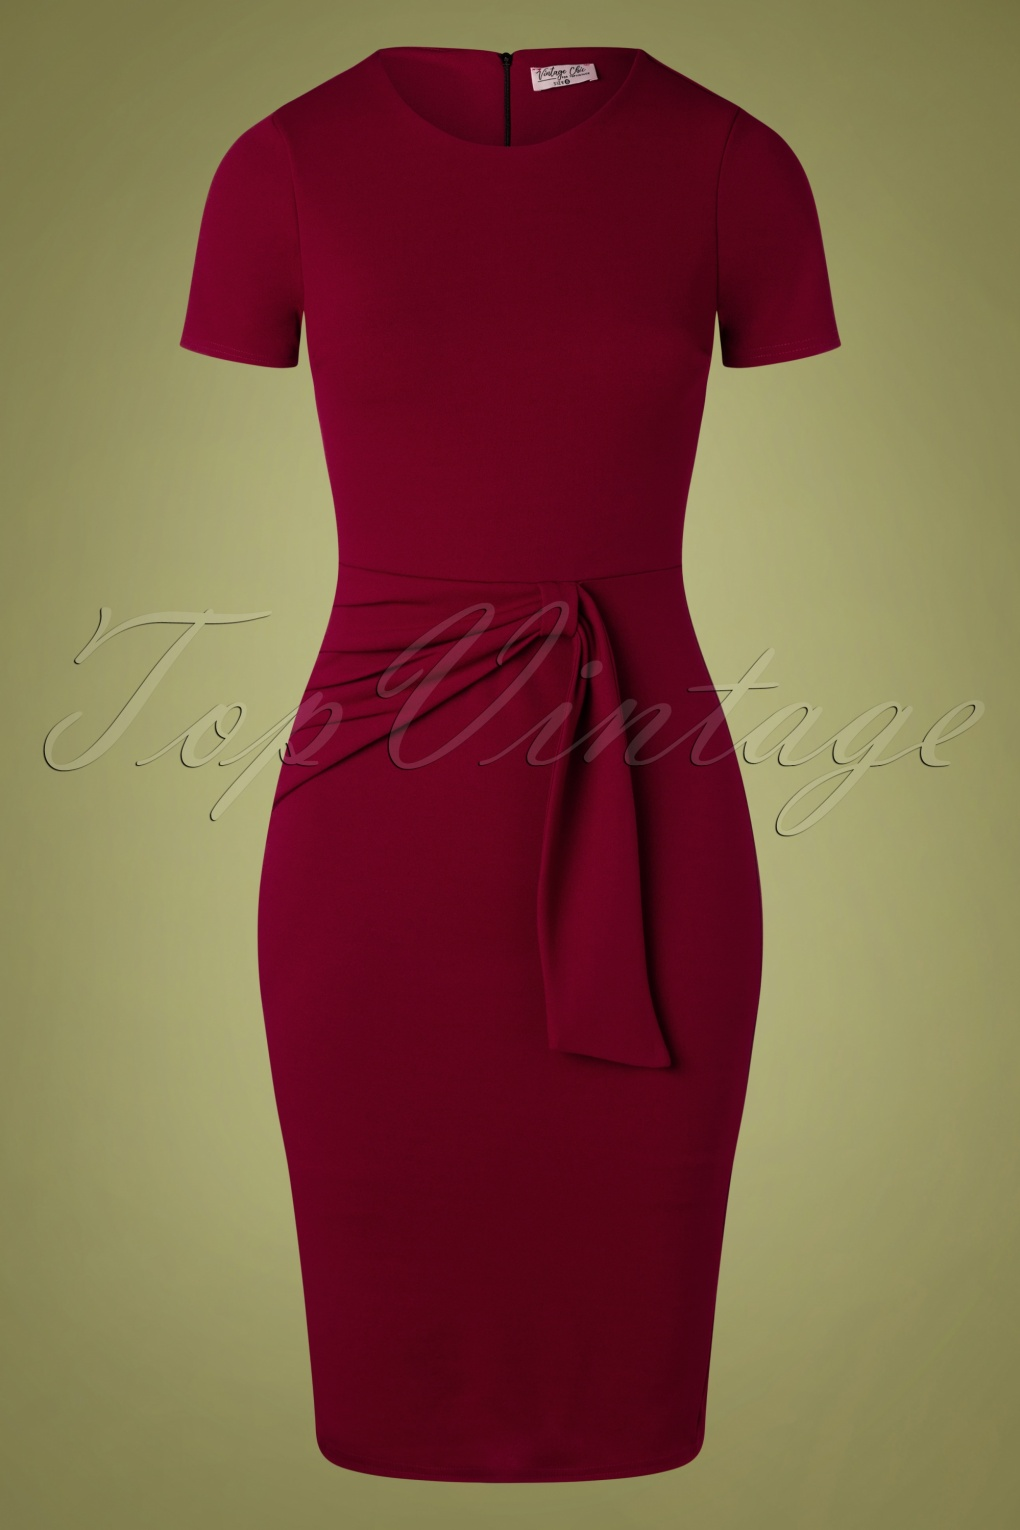 Pin Up Dresses | Pinup Clothing & Fashion 50s Lolina Pencil Dress in Wine £51.01 AT vintagedancer.com